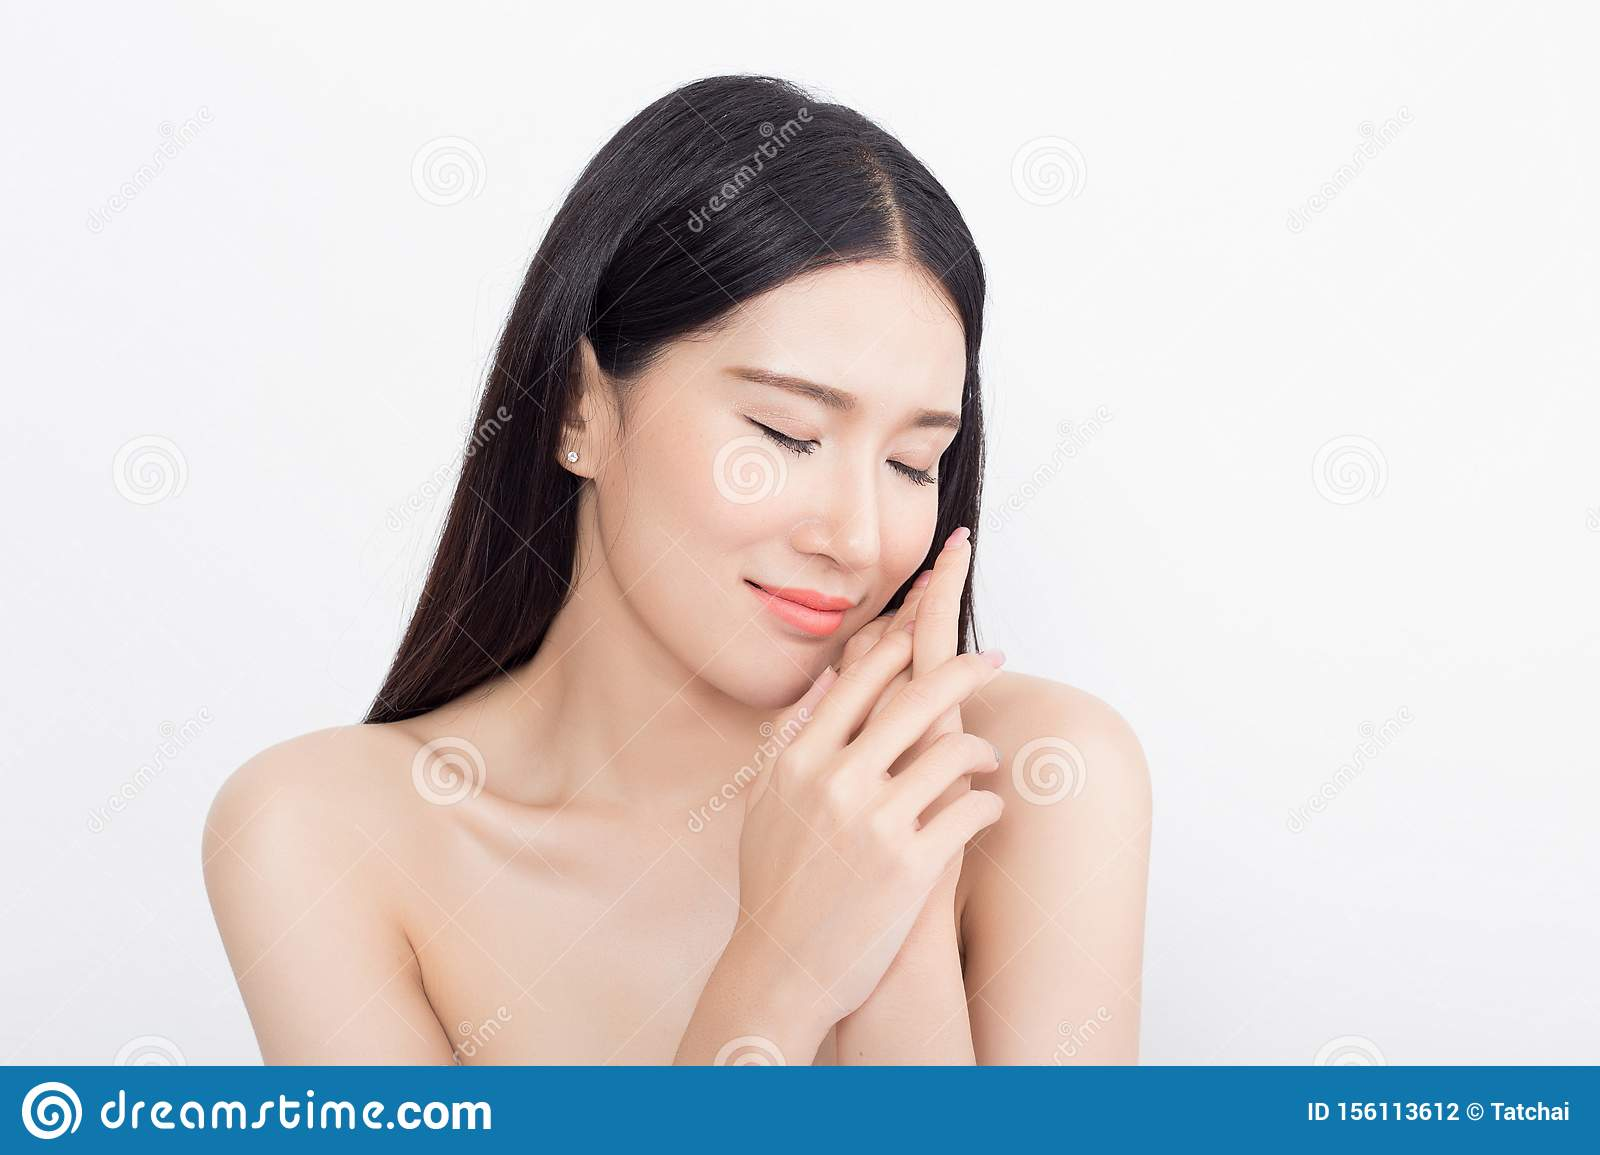 https://thumbs.dreamstime.com/z/beautiful-asian-woman-isolated-white-background-asian-beauty-concept-beautiful-asian-woman-156113612.jpg